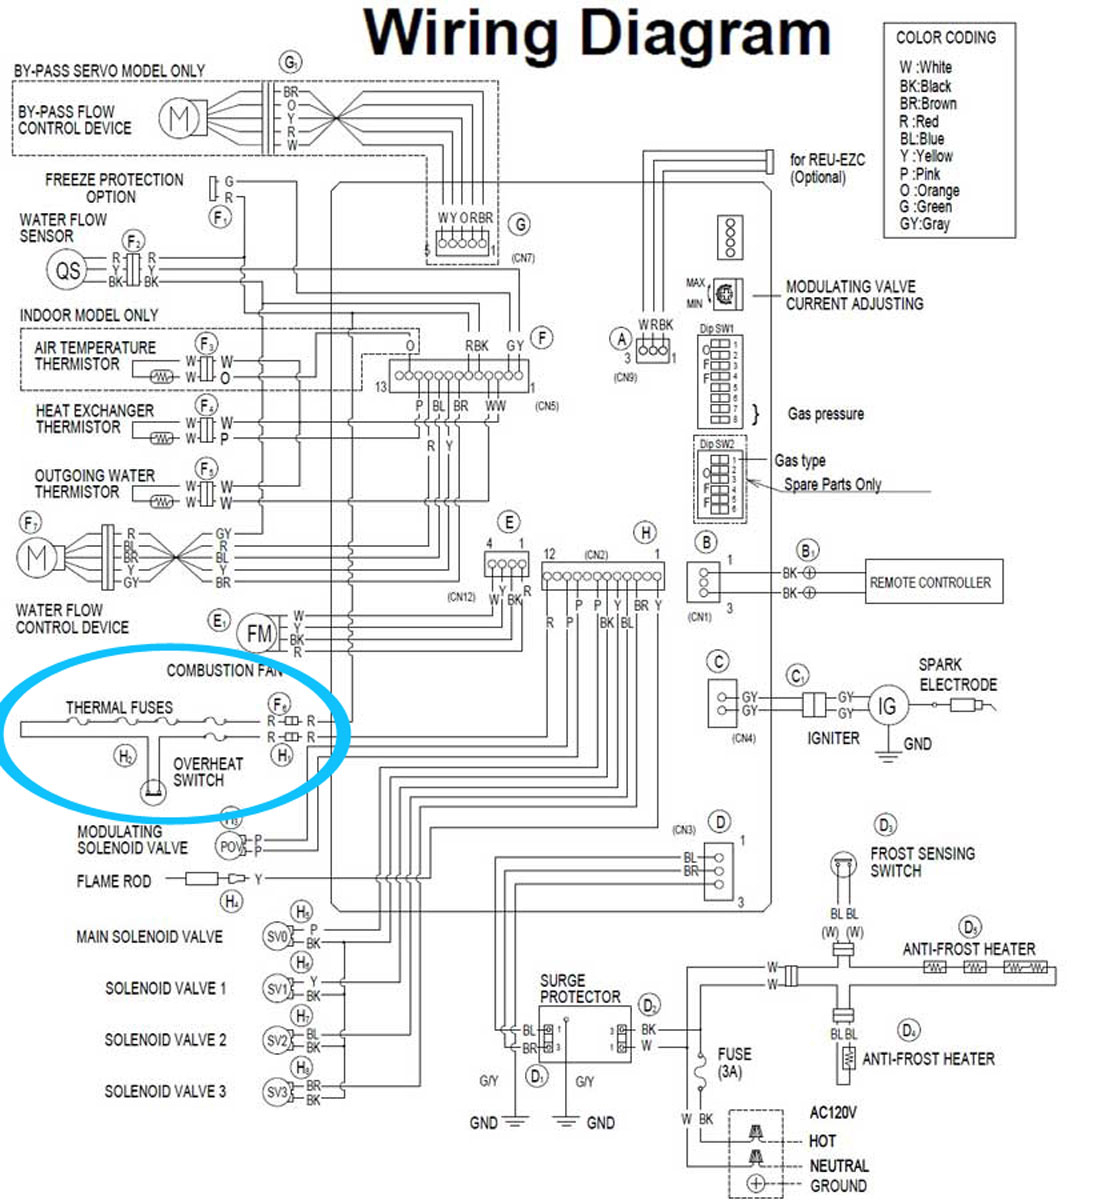 electric hot water tank wiring diagram Collection-Check the electric troubleshoot from 2008 pdf Tankless gas water heater 6-n